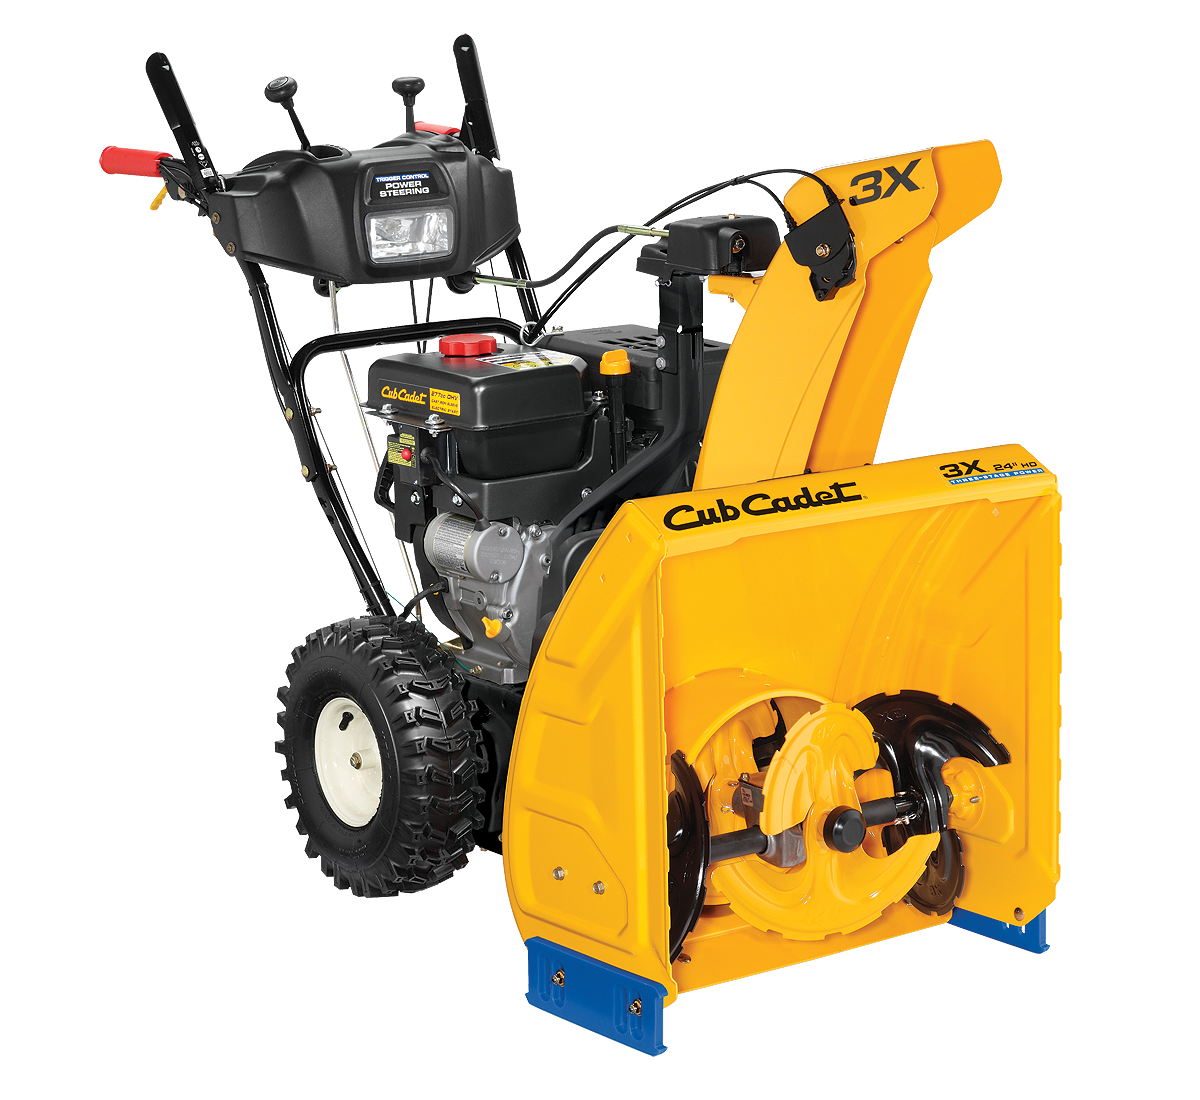 Cubcadet 3x 24 Hd Three Stage Who Even Knew That Was Possible This Thing Looks Tough Enough To Do My D Gas Snow Blower Snow Blower Electric Snow Blower